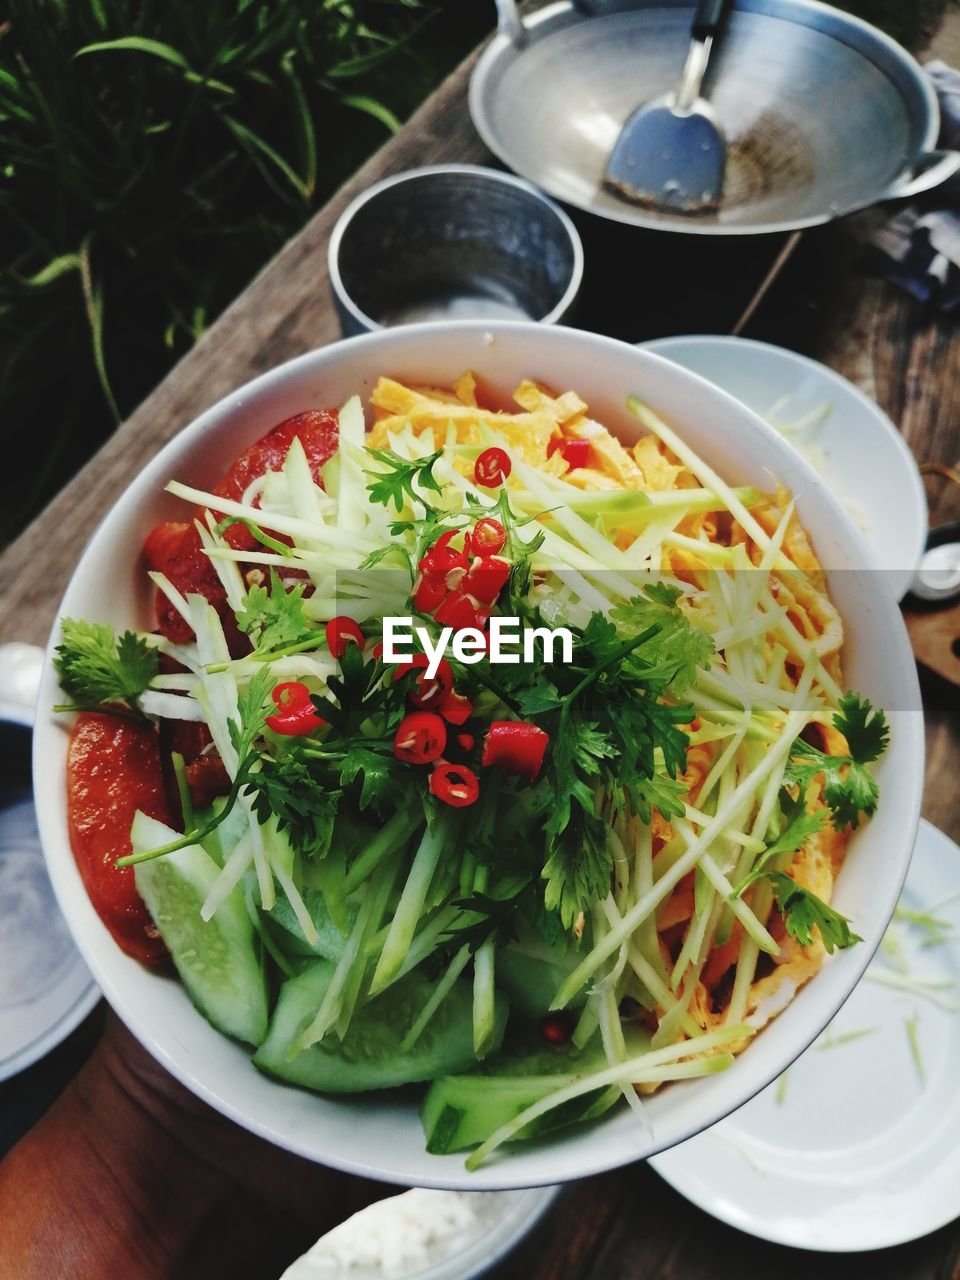 HIGH ANGLE VIEW OF MEAL SERVED IN BOWL